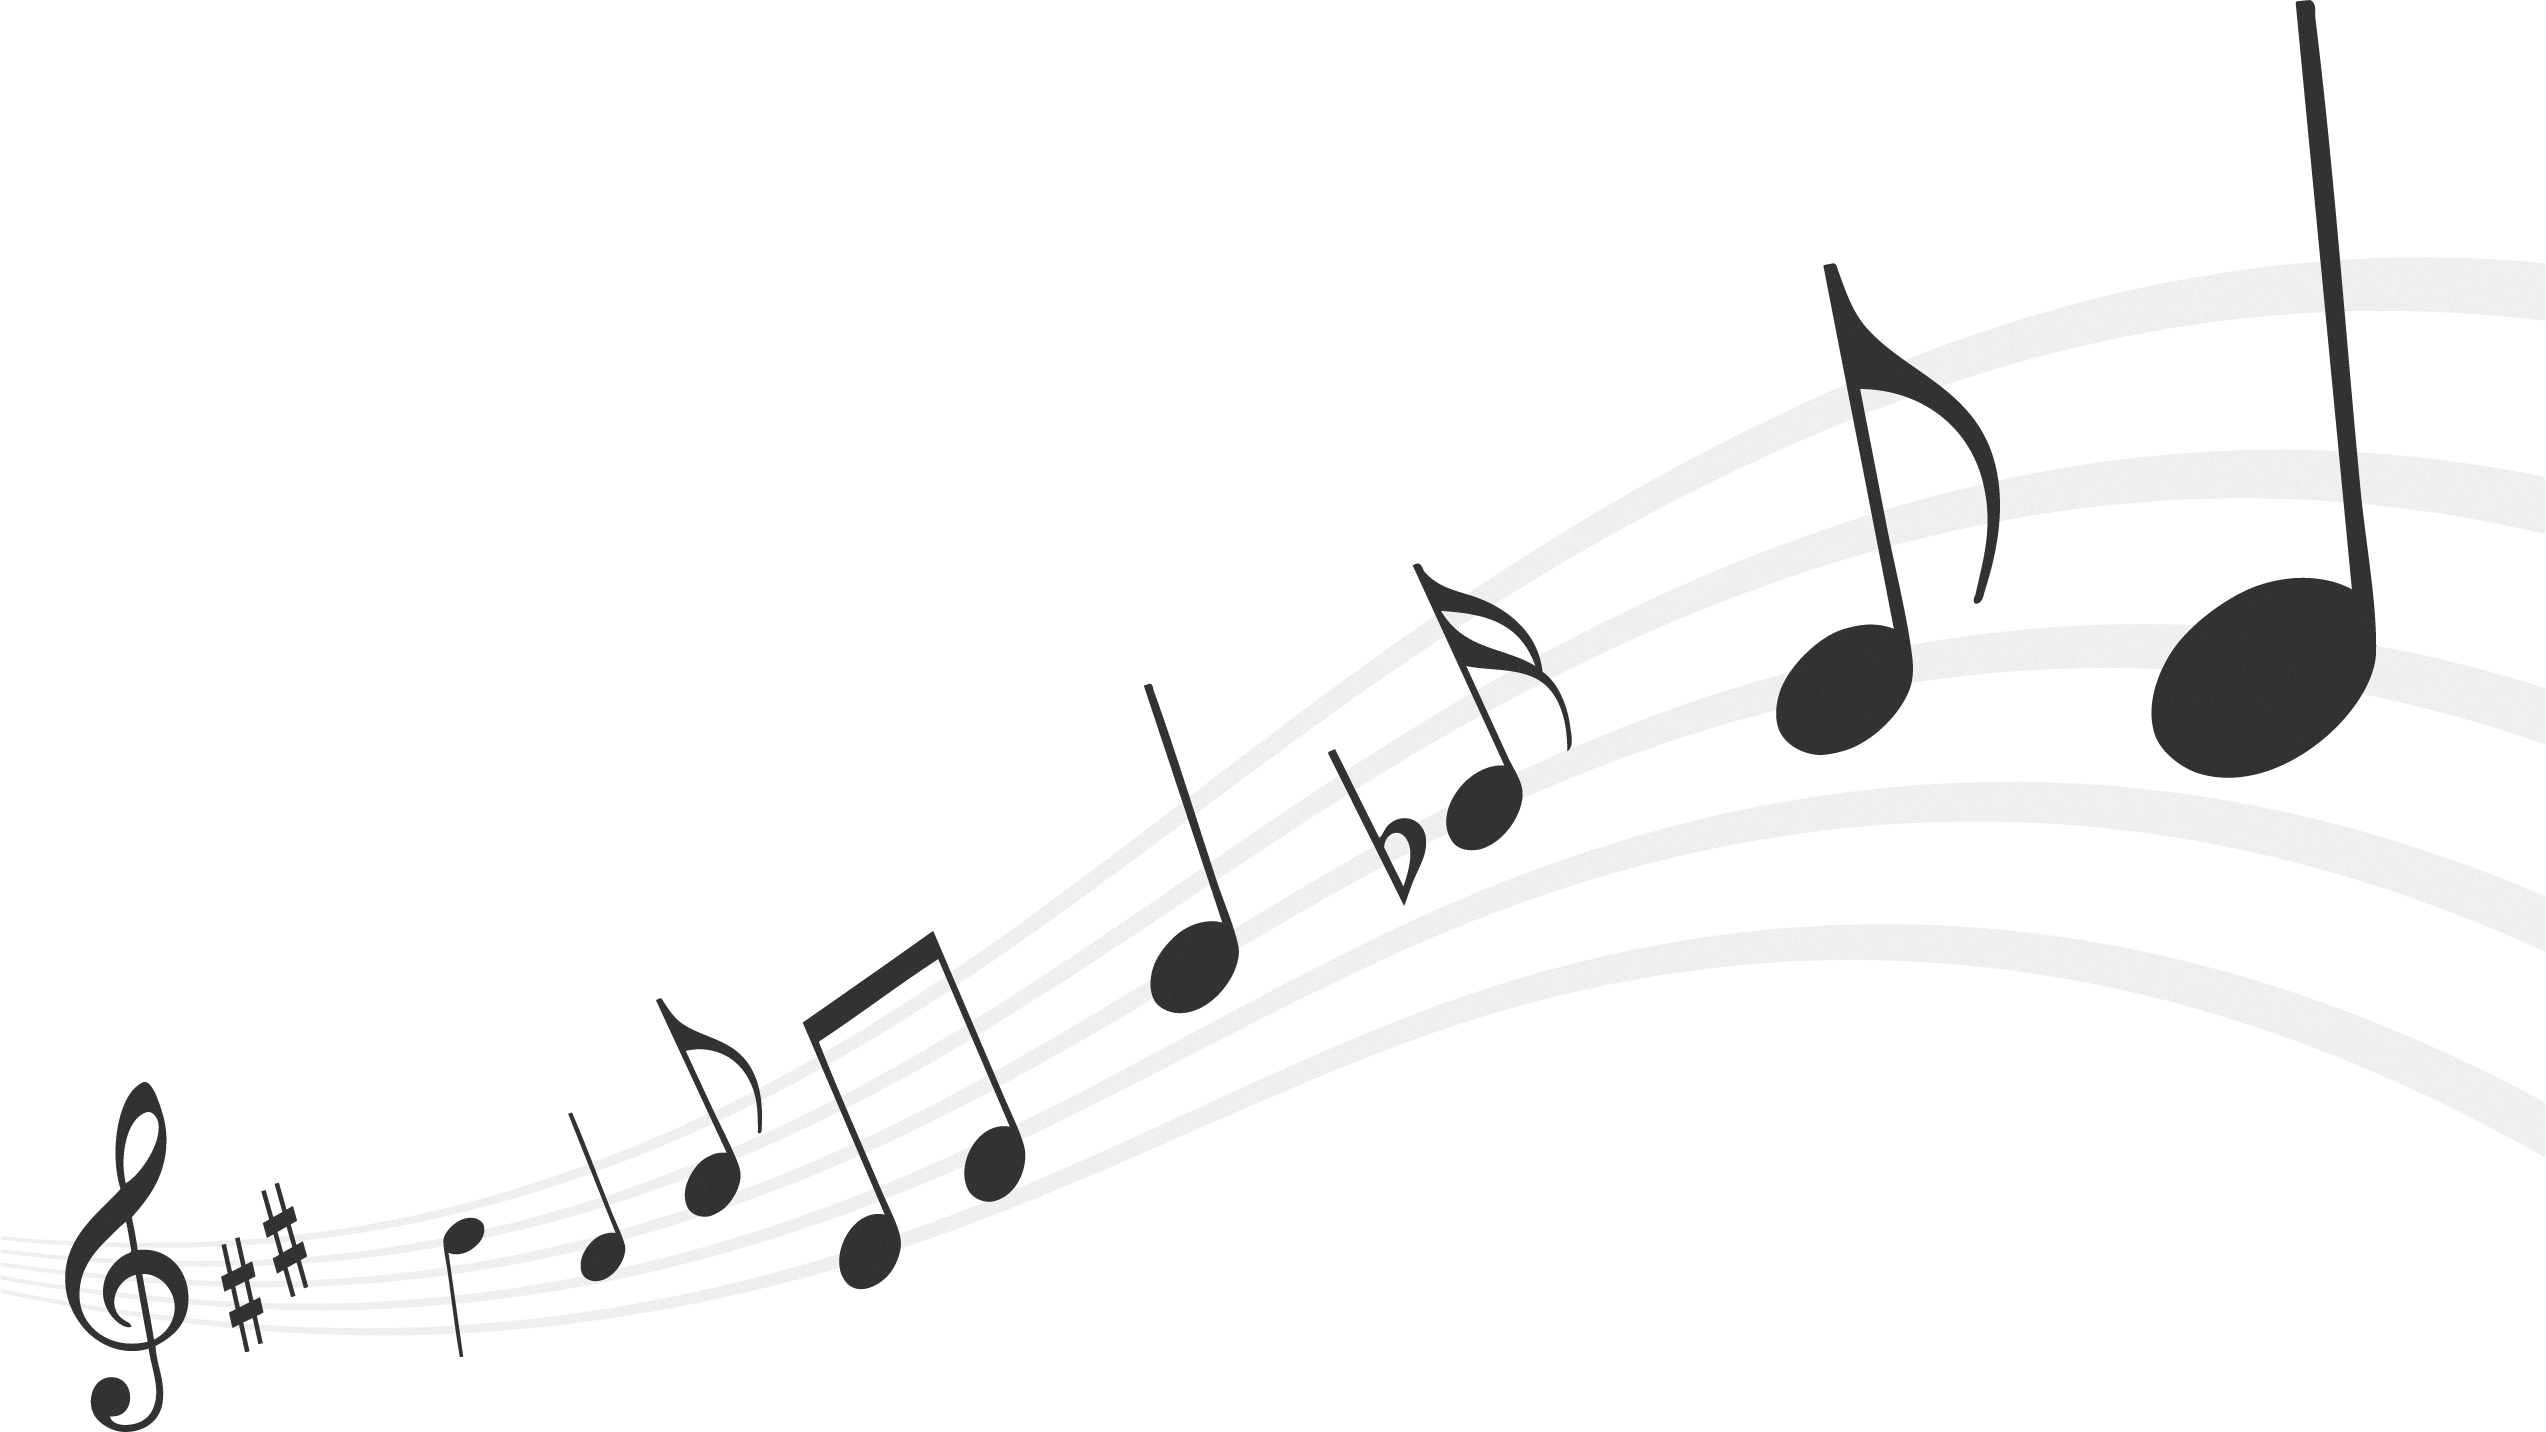 Trumpet music notes clipart black and white png vector free library Music Notes PNG HD Transparent Music Notes HD.PNG Images ... vector free library